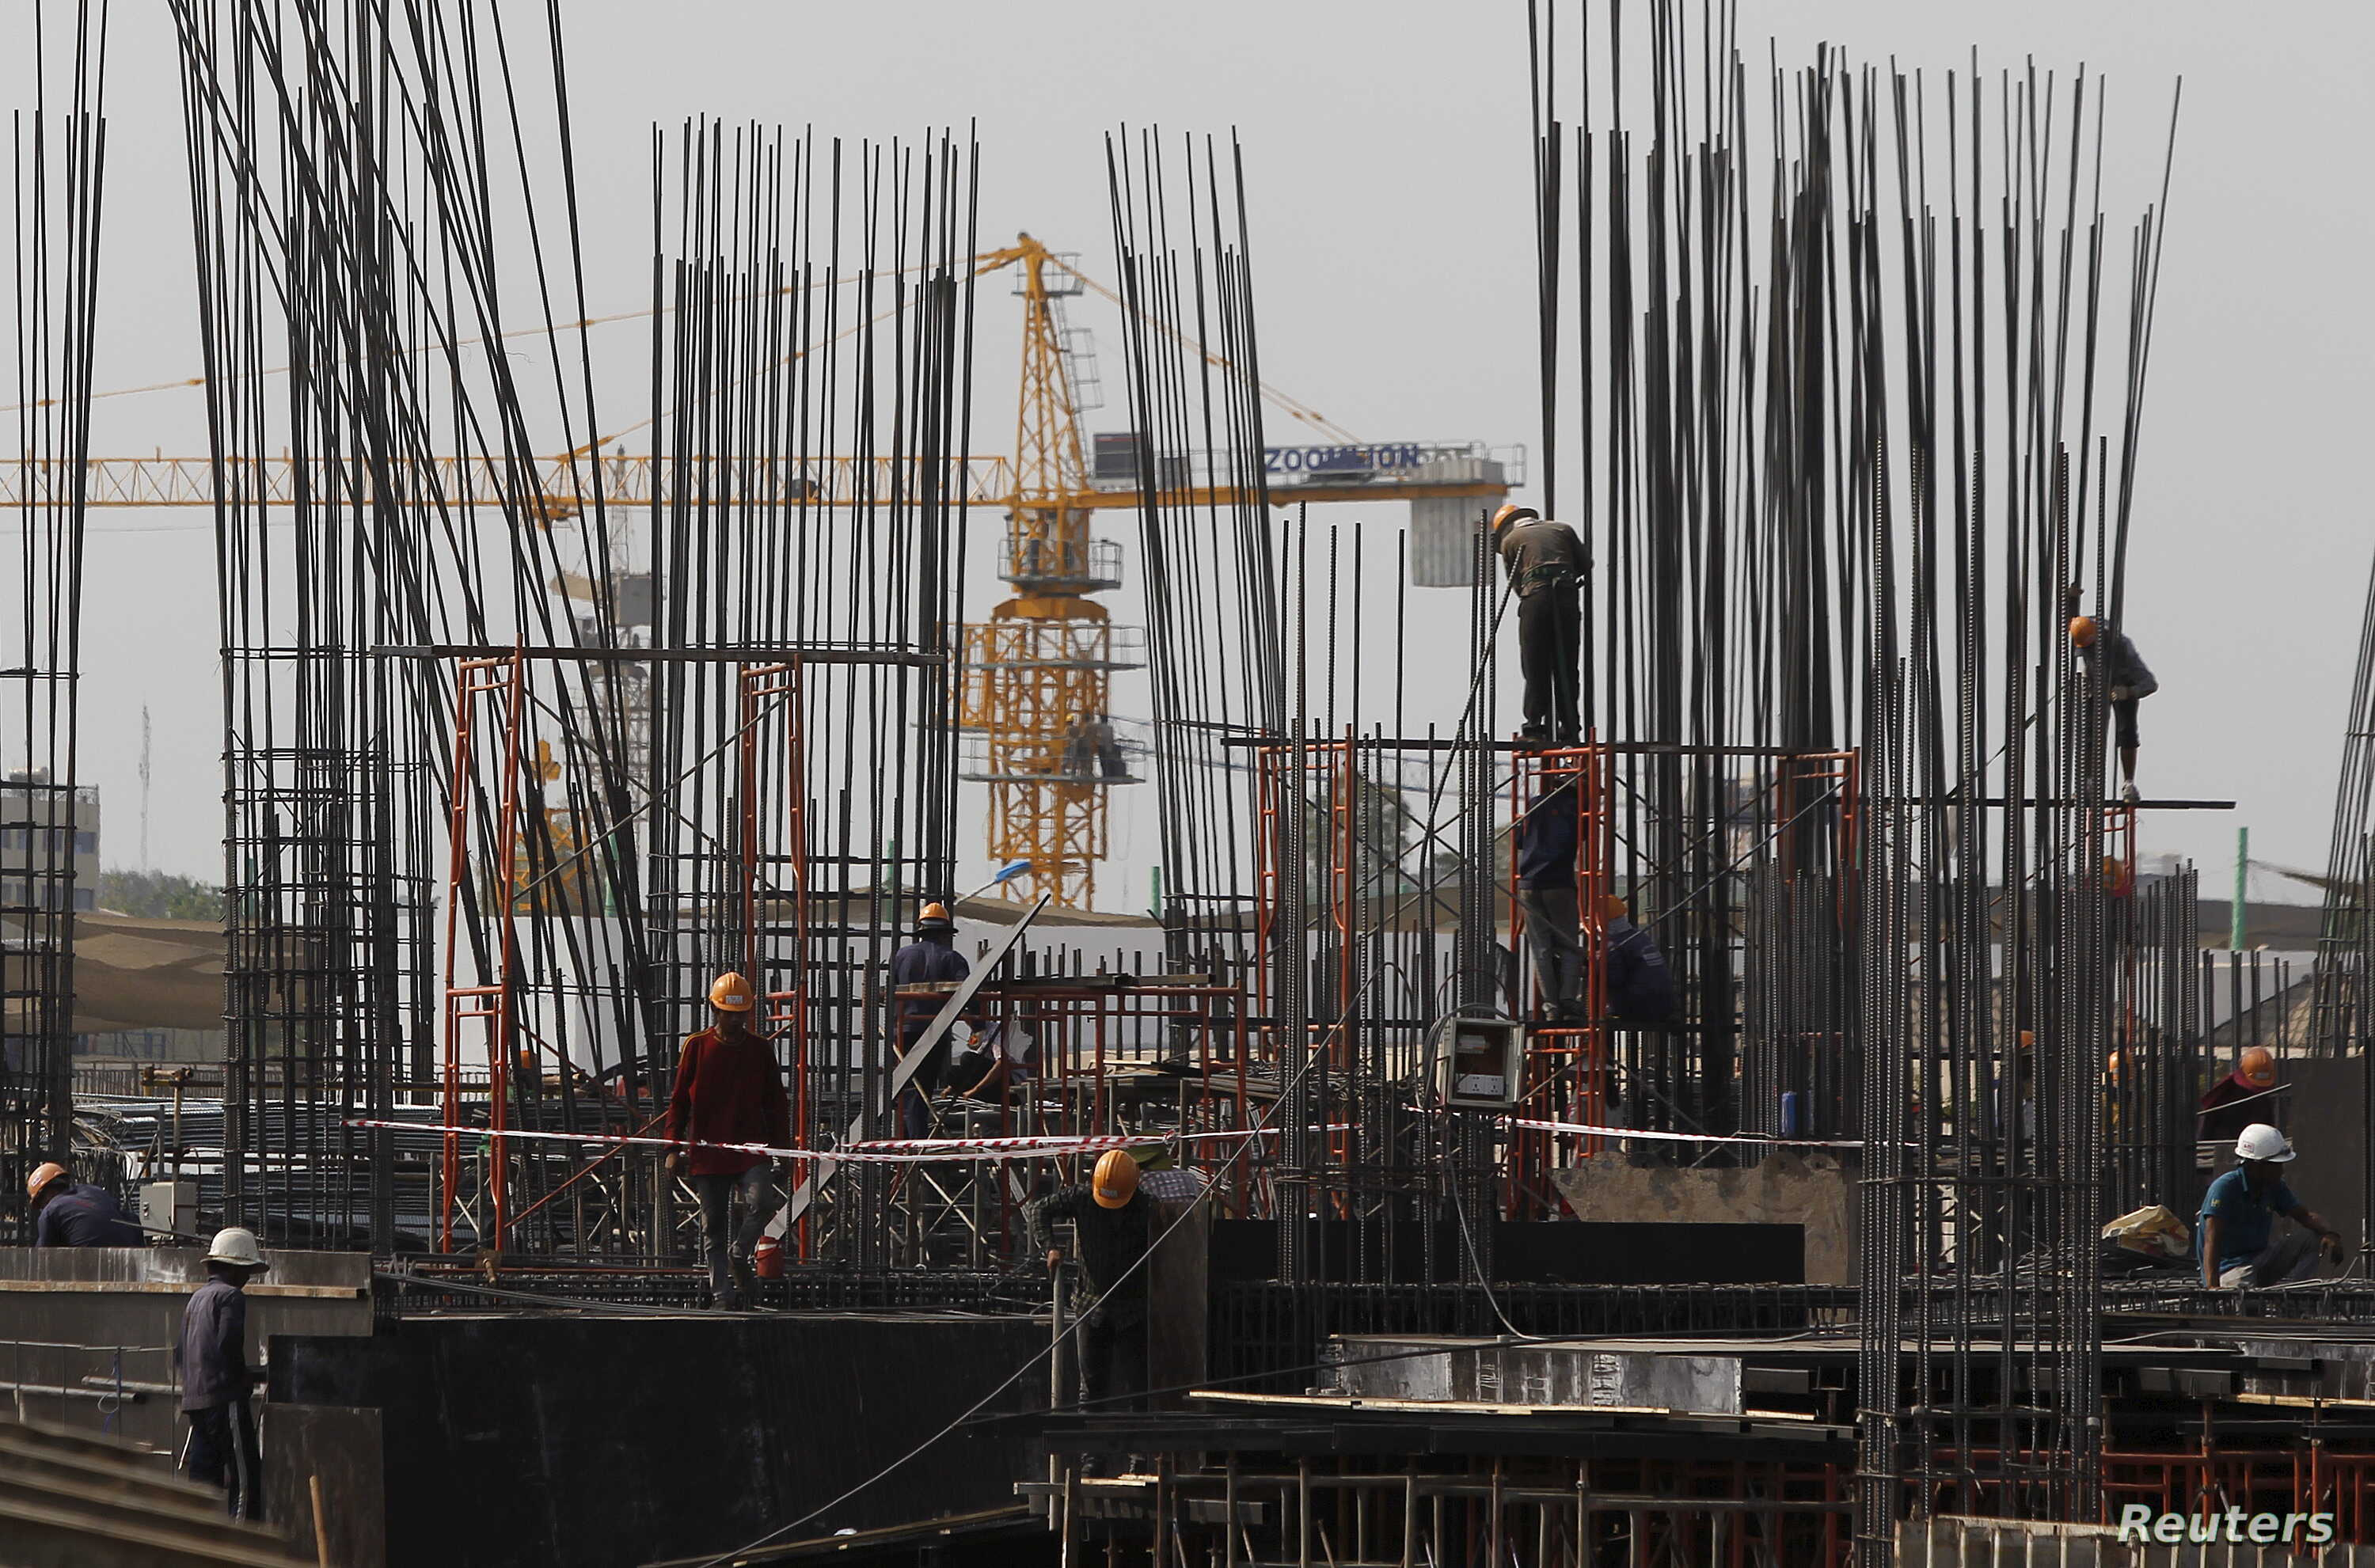 Laborers work at a construction site in Phnom Penh. Cambodia's economy is projected to expand by 7.3 percent in 2015, up from 7 percent in 2014, and will climb to 7.5 percent next year, Asian Development Bank (ADB) said in its Asian Development Outlo